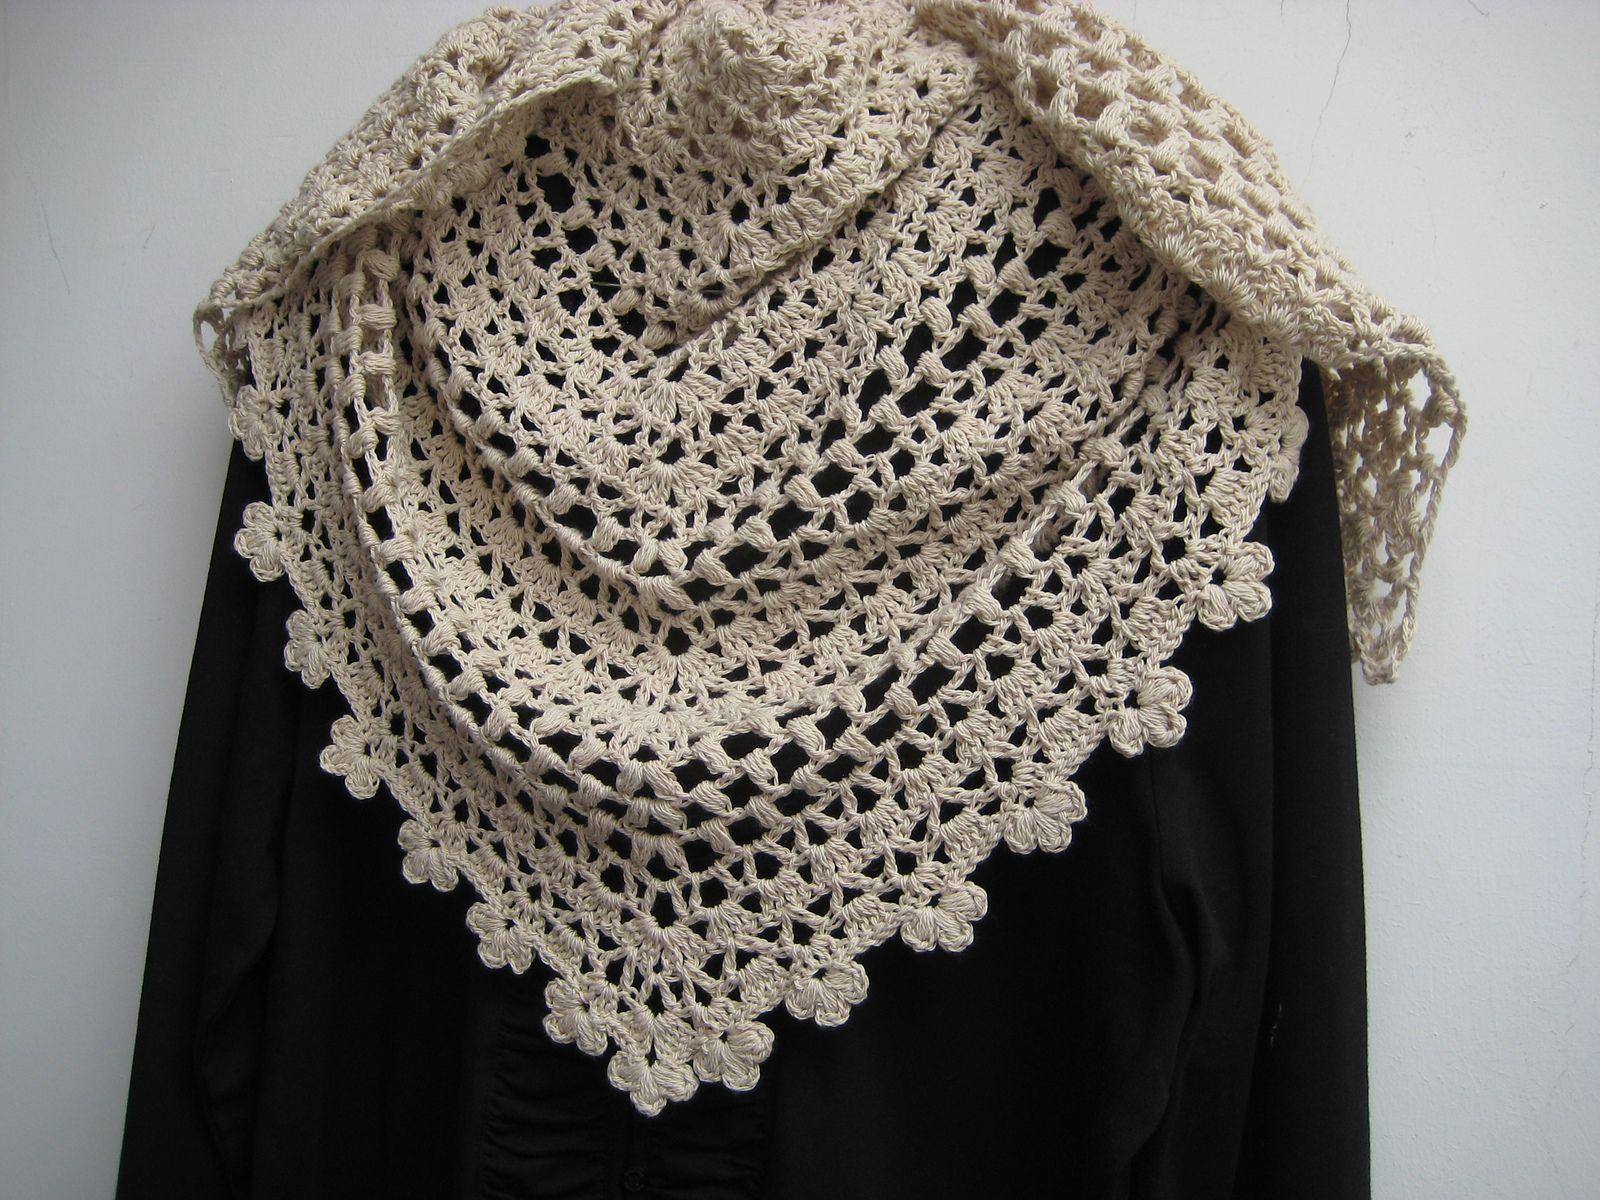 Ravelry: Seems Like Old Times Shawl - Free Crochet Pattern | Crochet ...